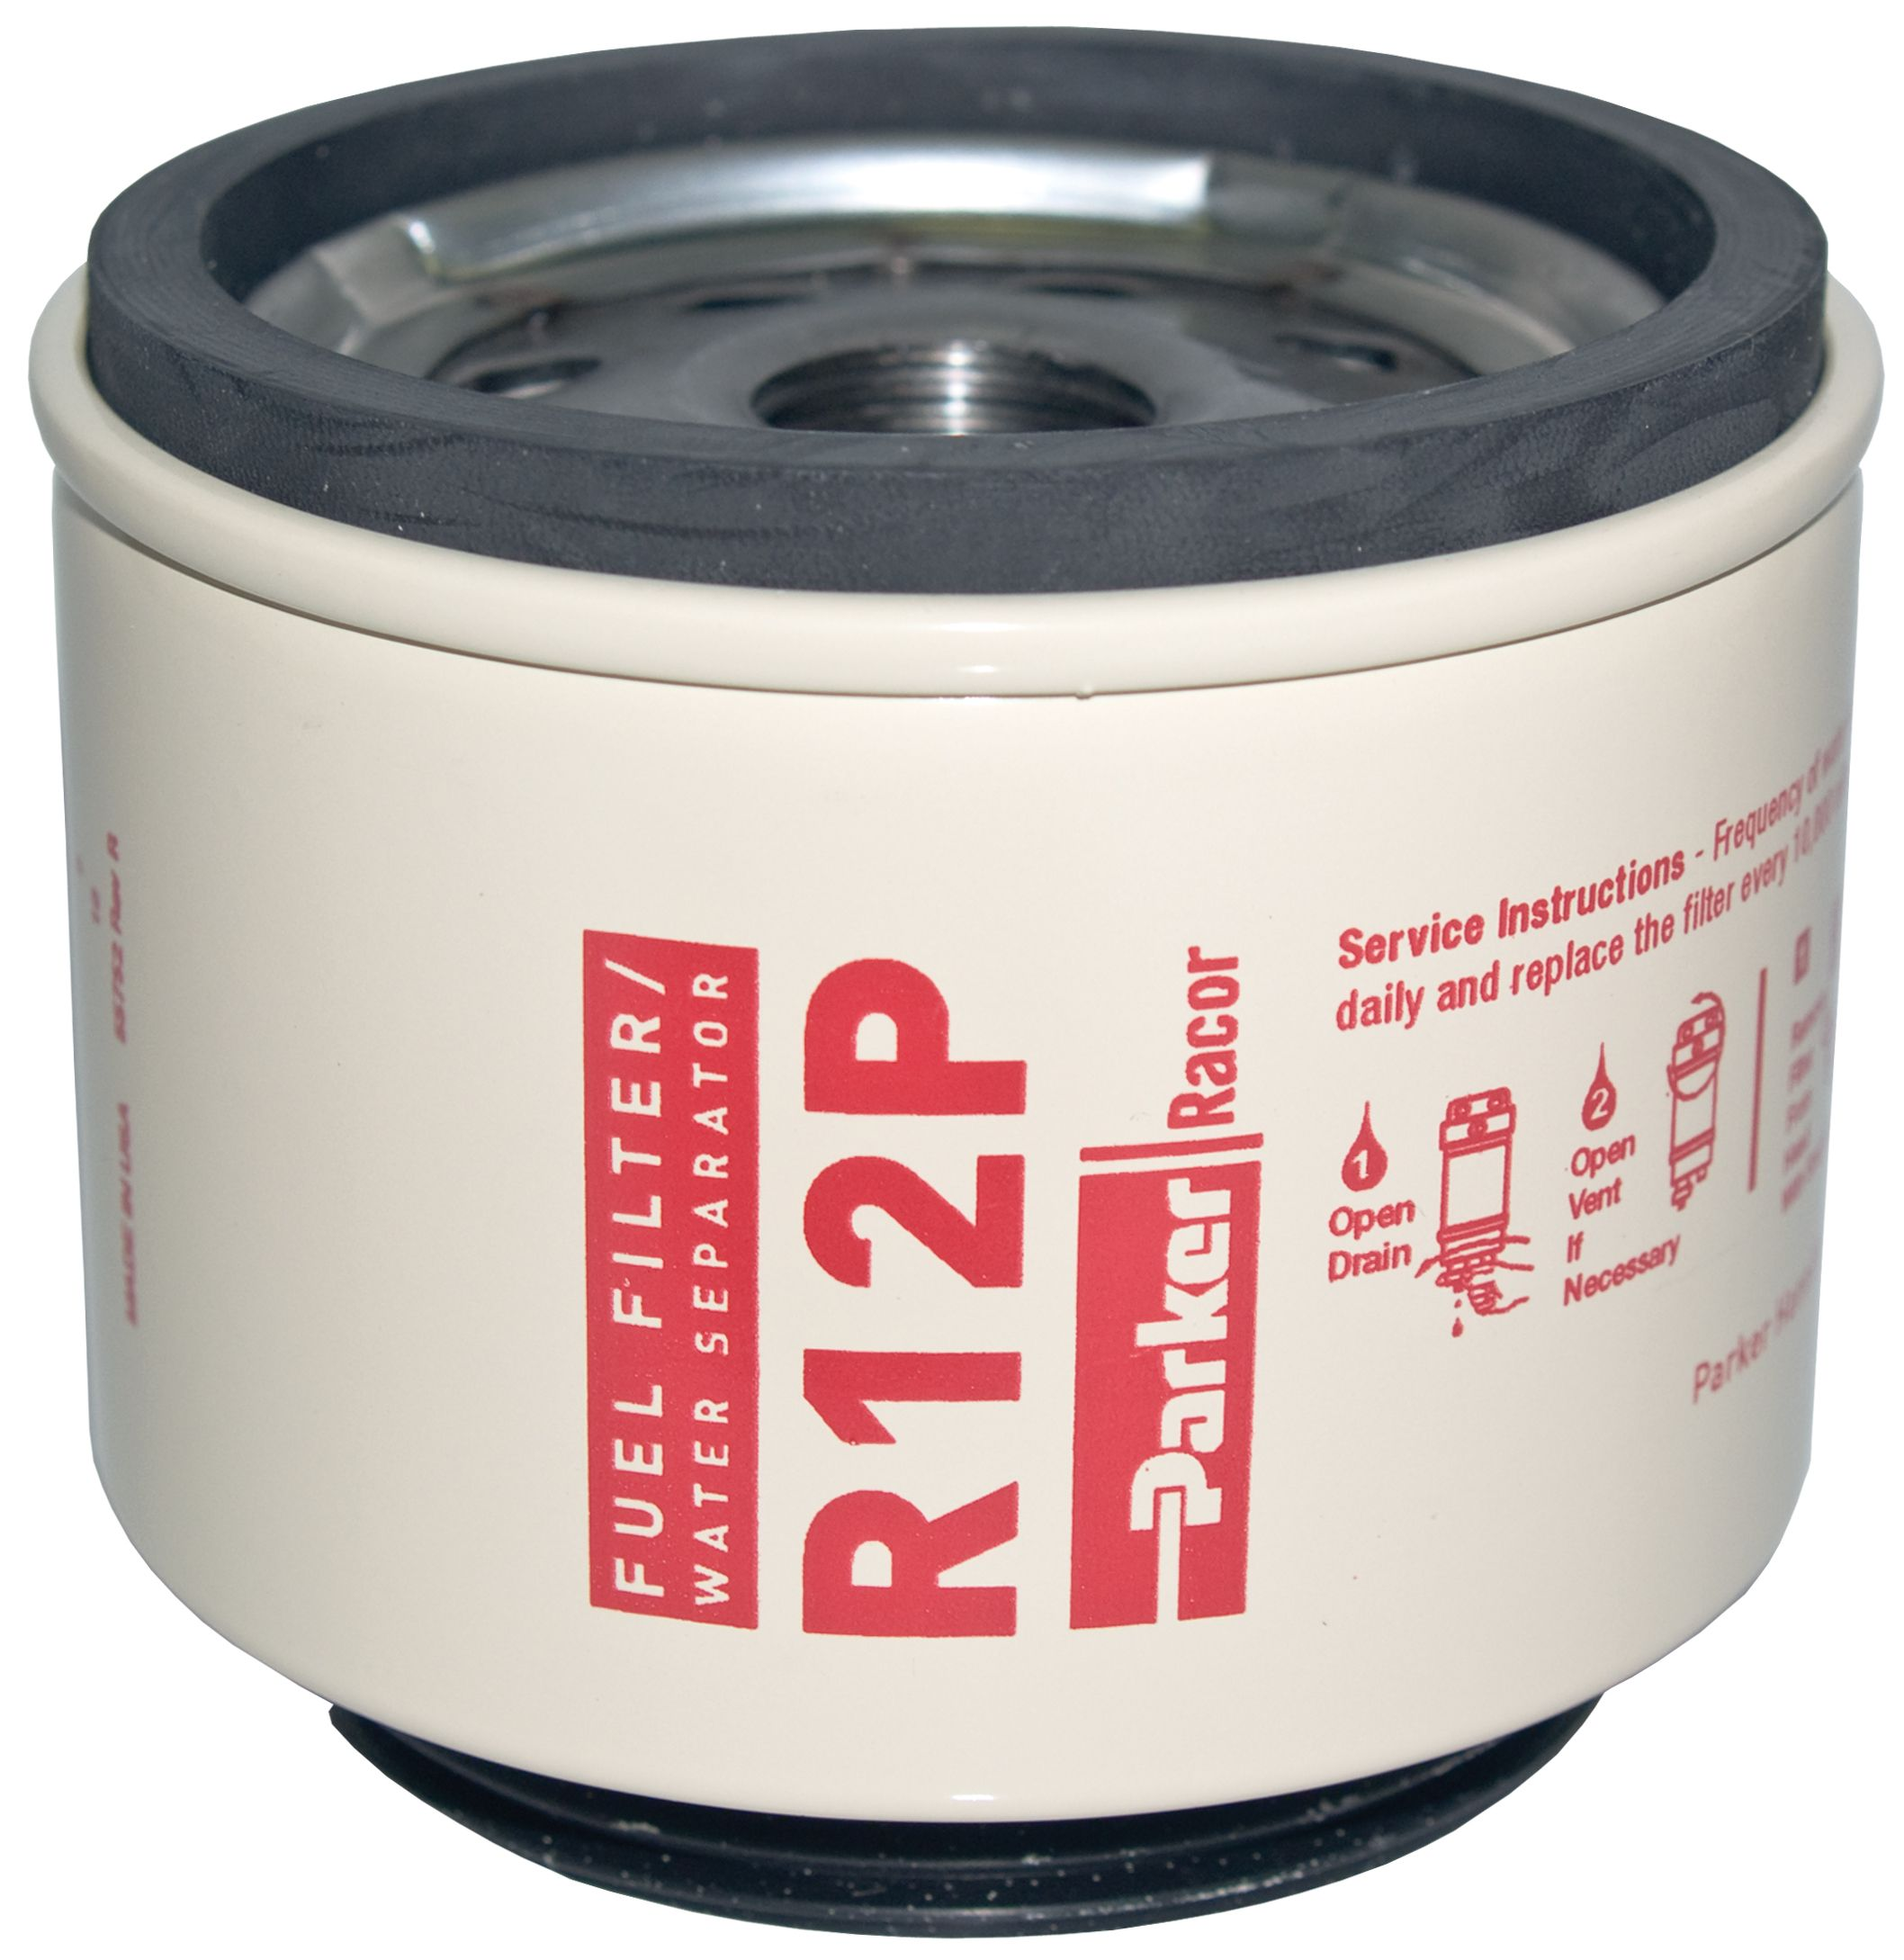 Racor R12 R12s R12t R12p Series Diesel Spin On Replacement Elements Parker Fuel Filters